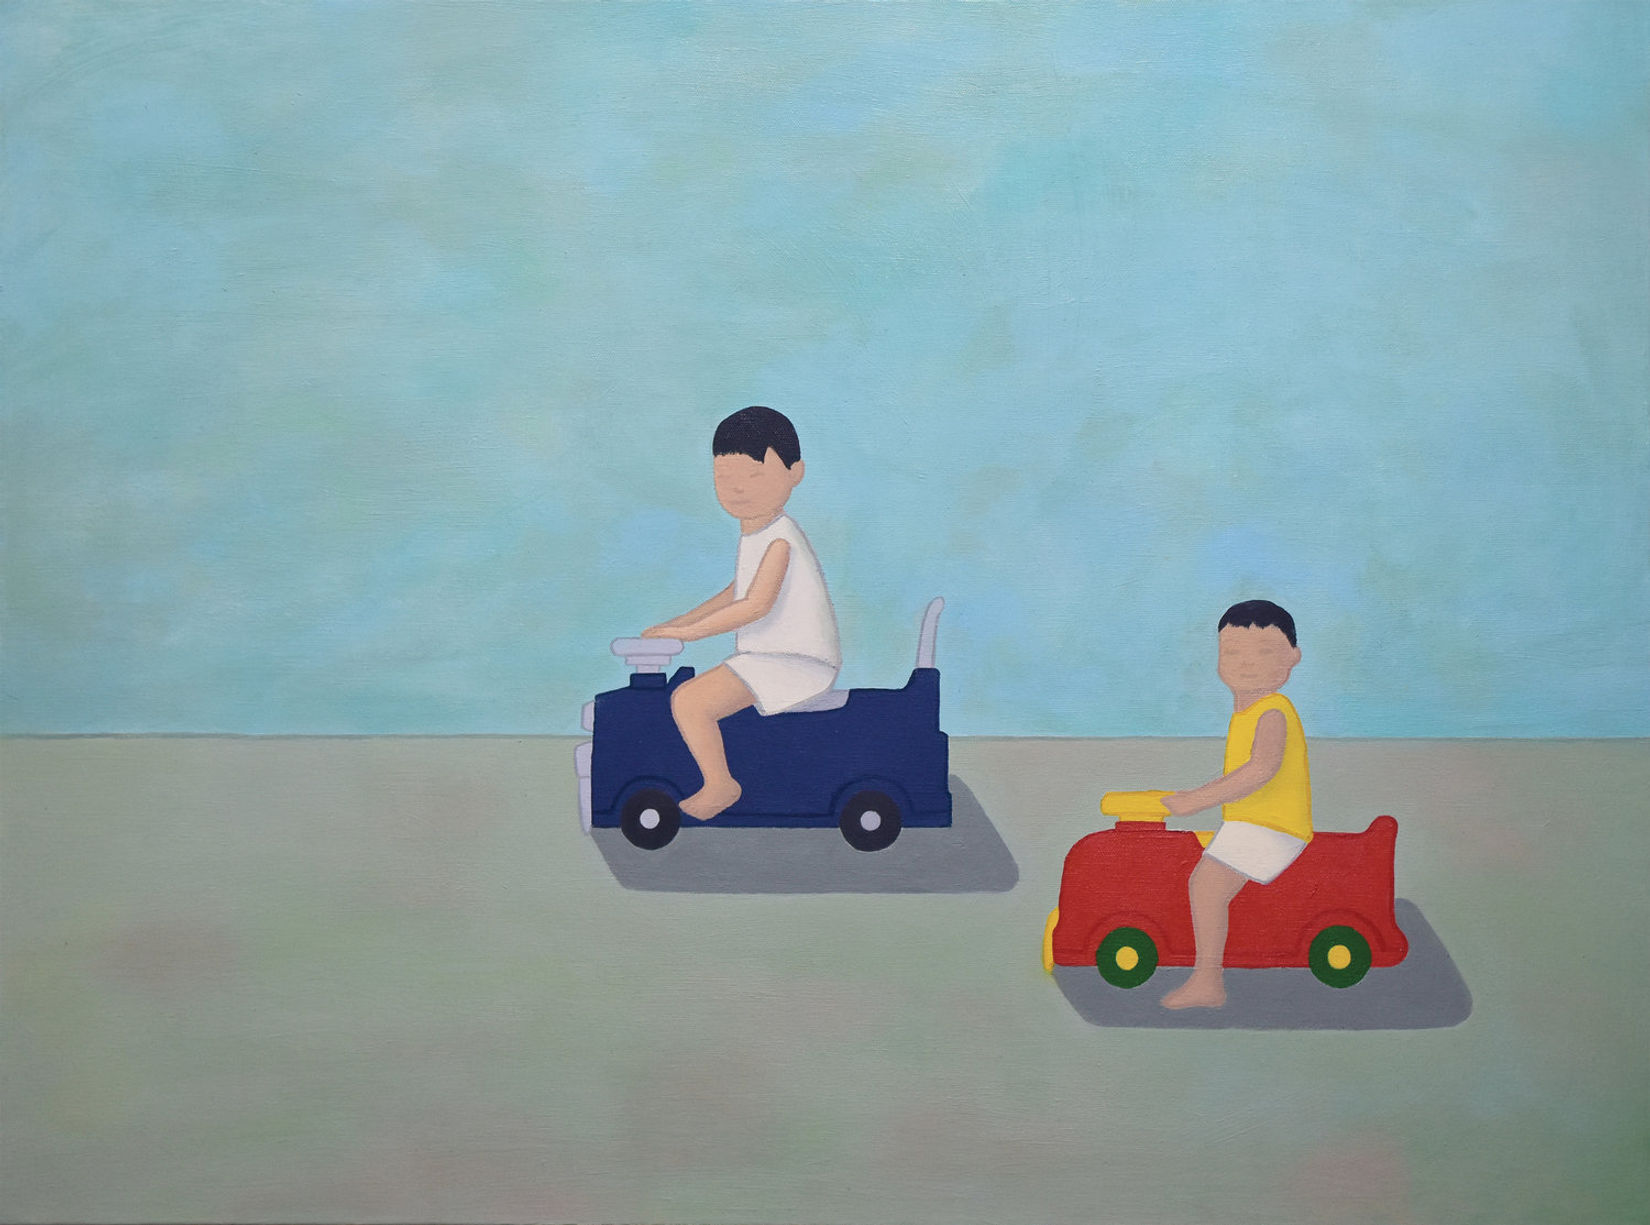 Find your Inner Child with these 10 Playful Artworks